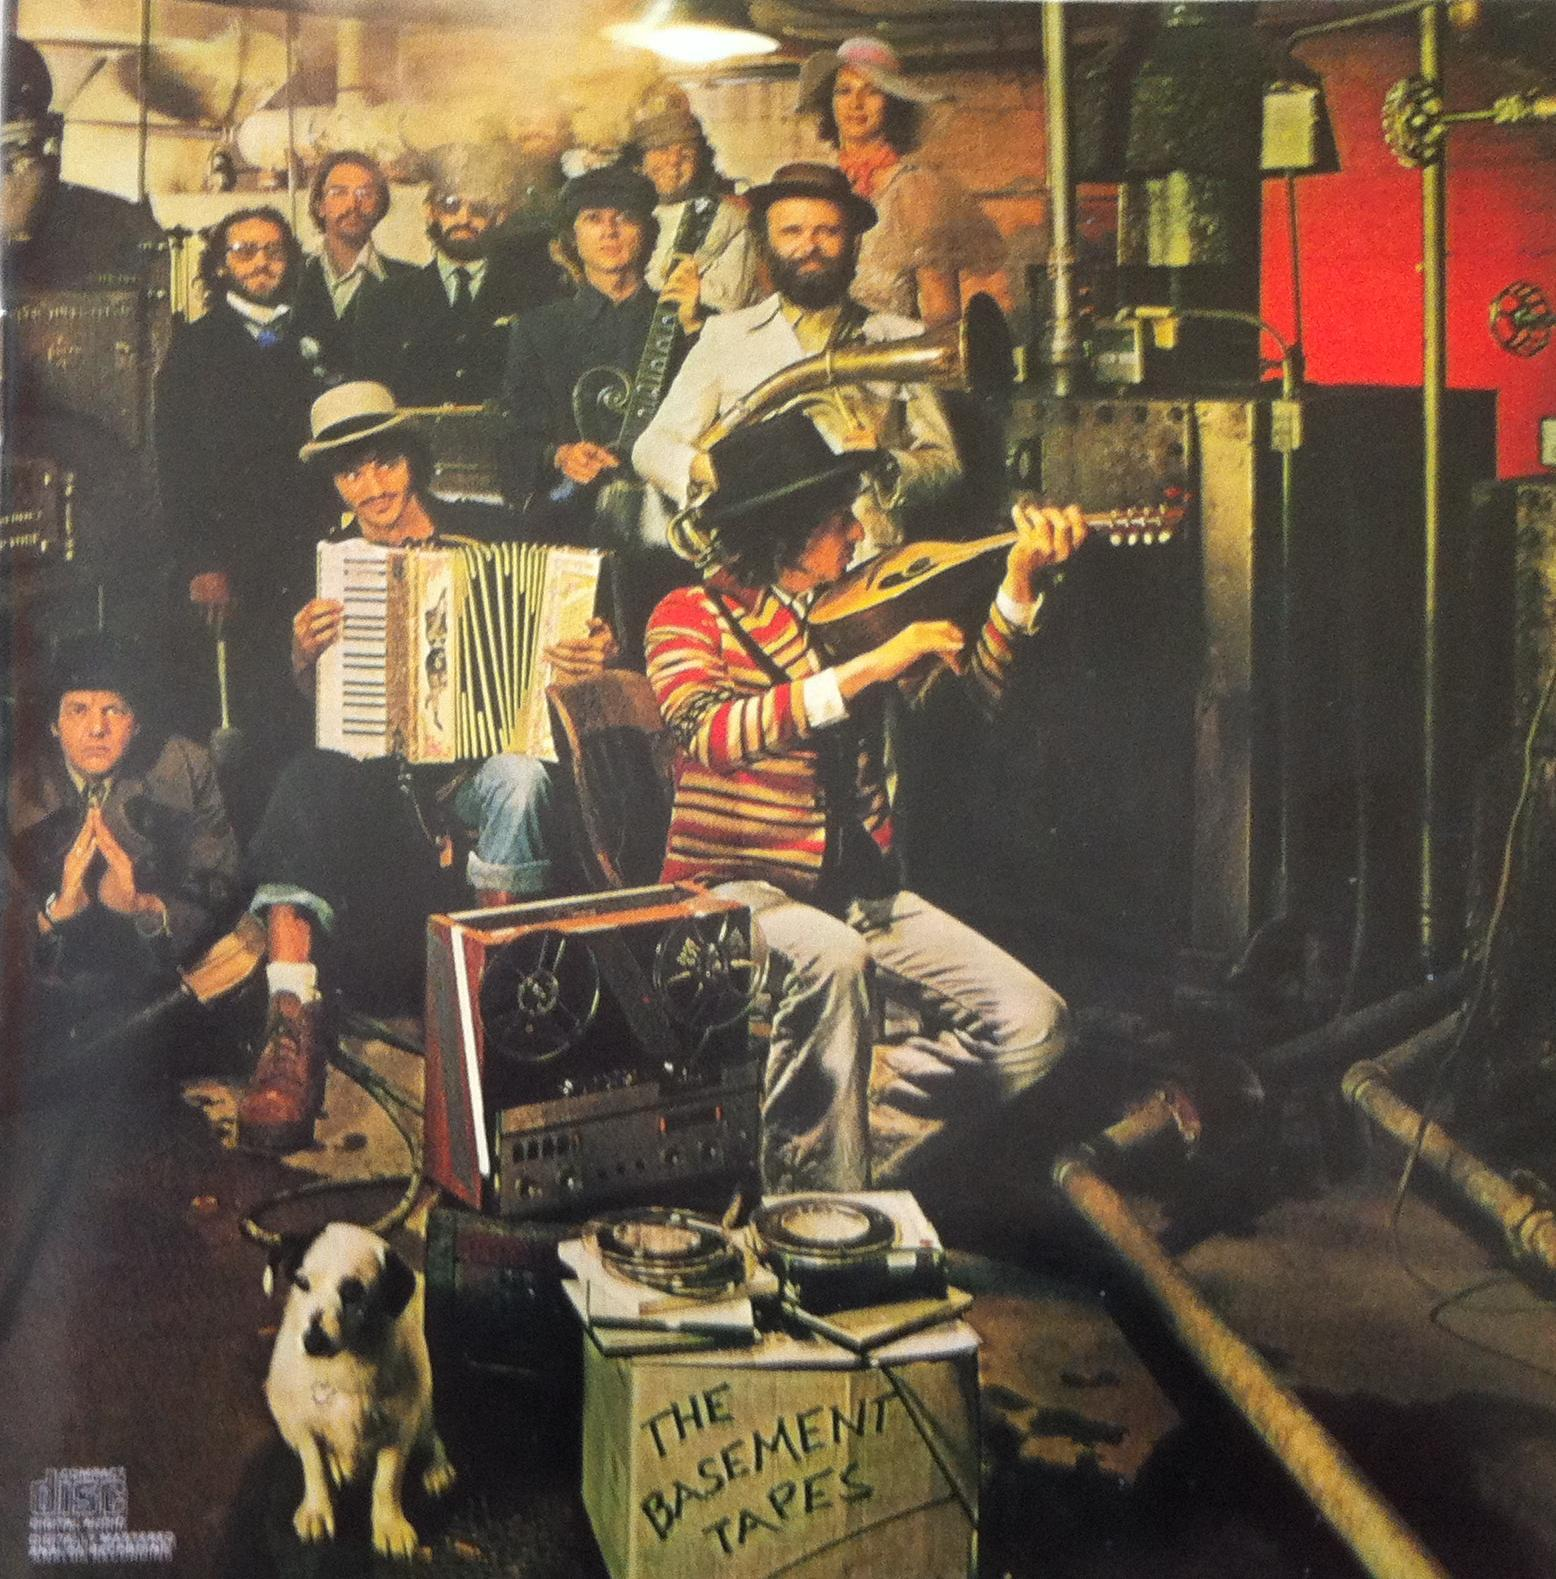 bob dylan album by album the basement tapes part i great jones